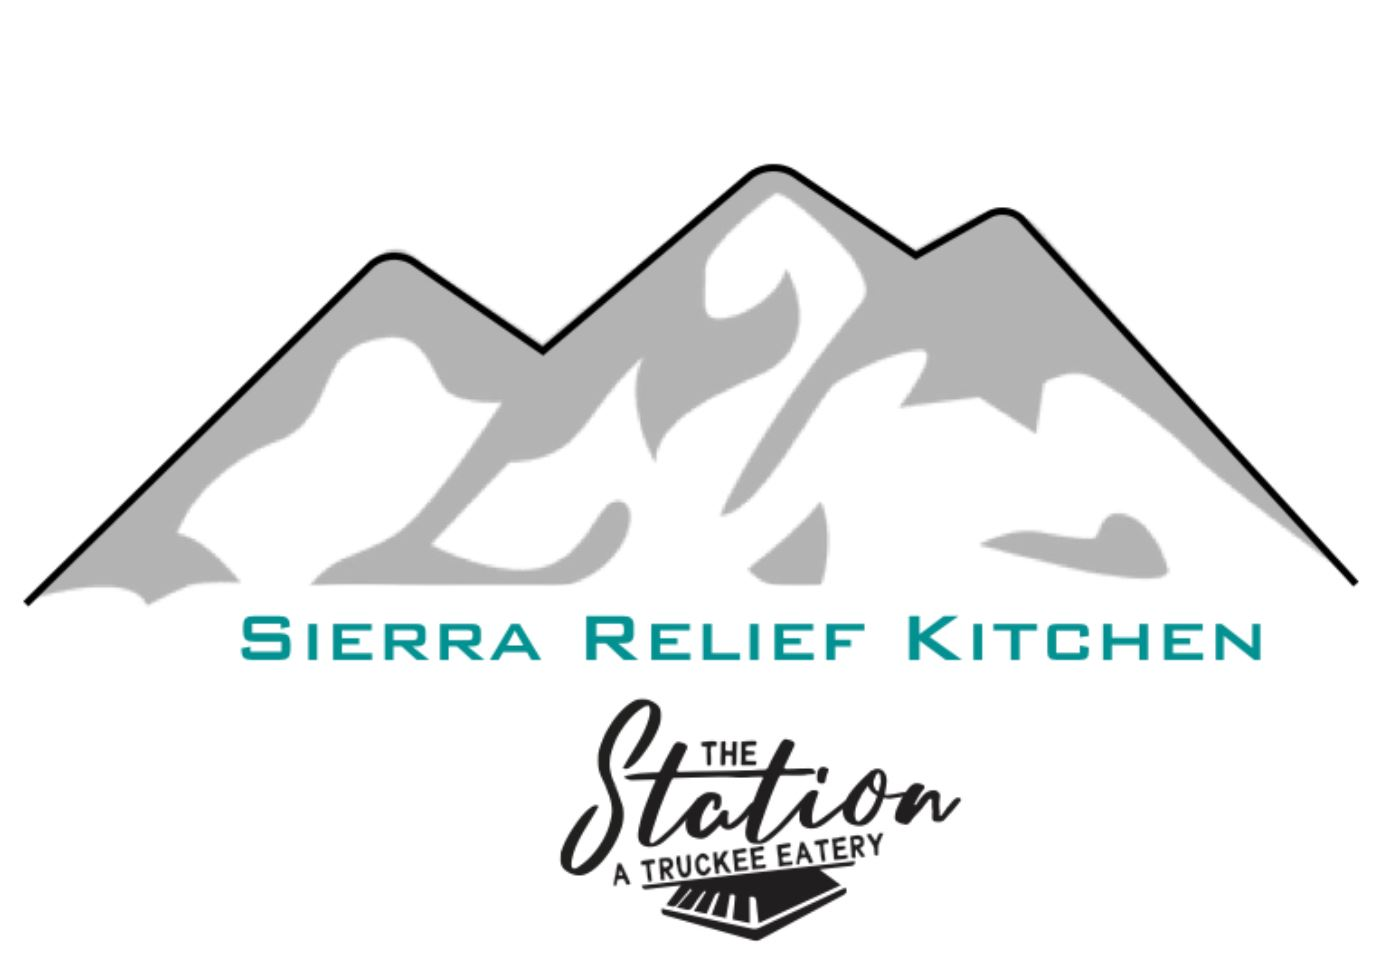 Sierra Relief Kitchen